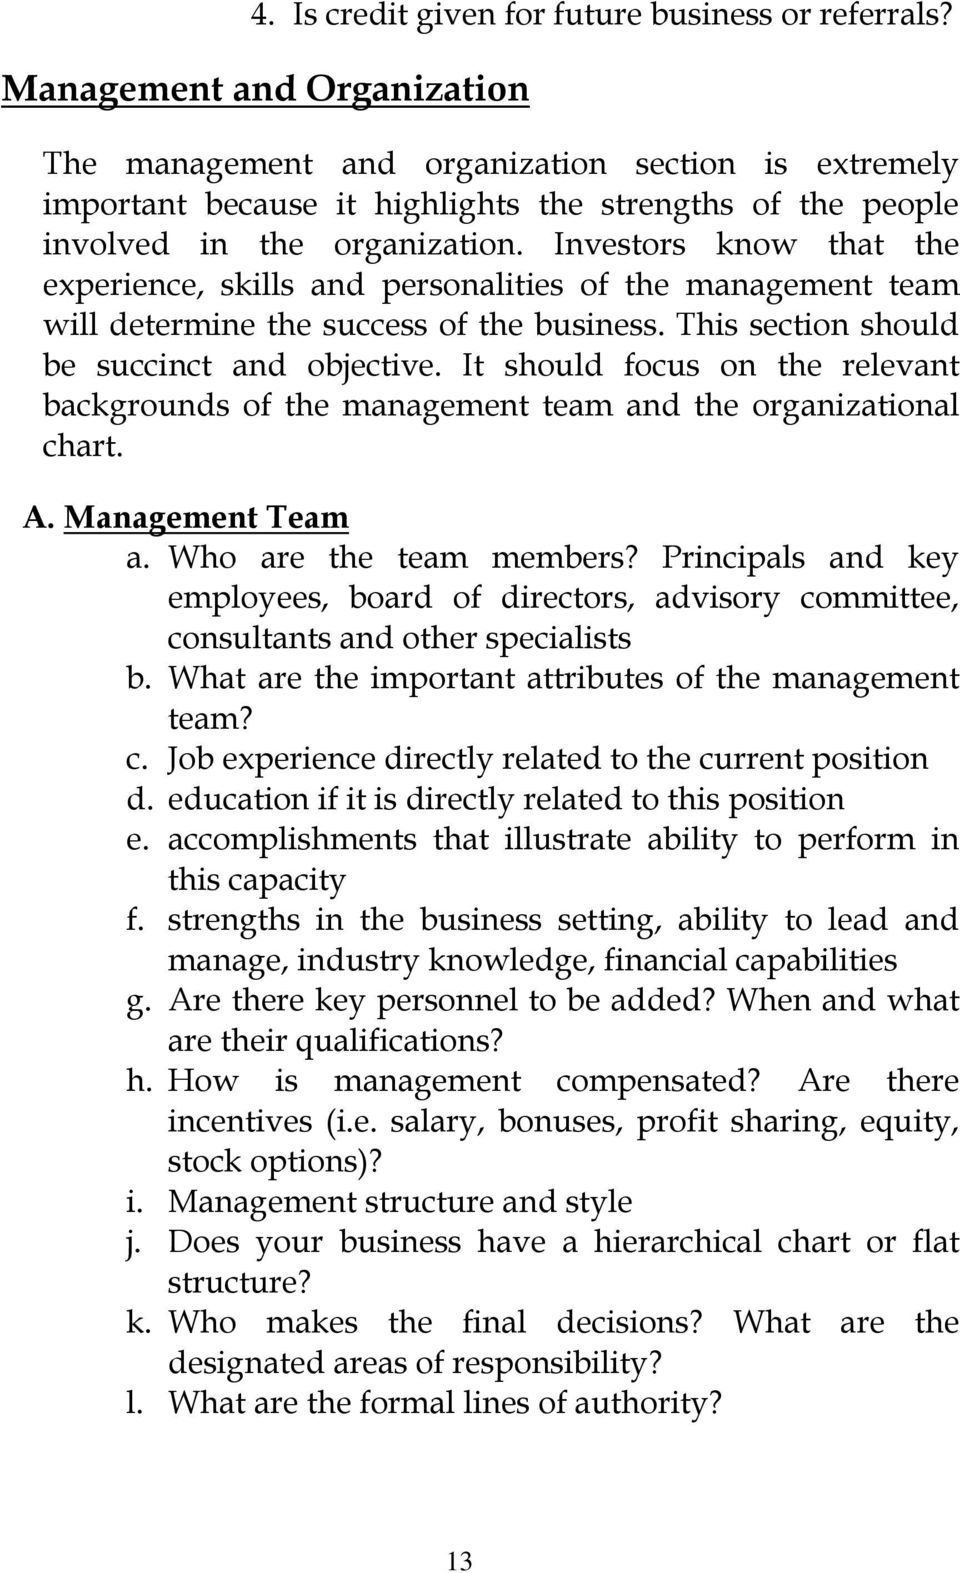 Investors know that the experience, skills and personalities of the management team will determine the success of the business. This section should be succinct and objective.